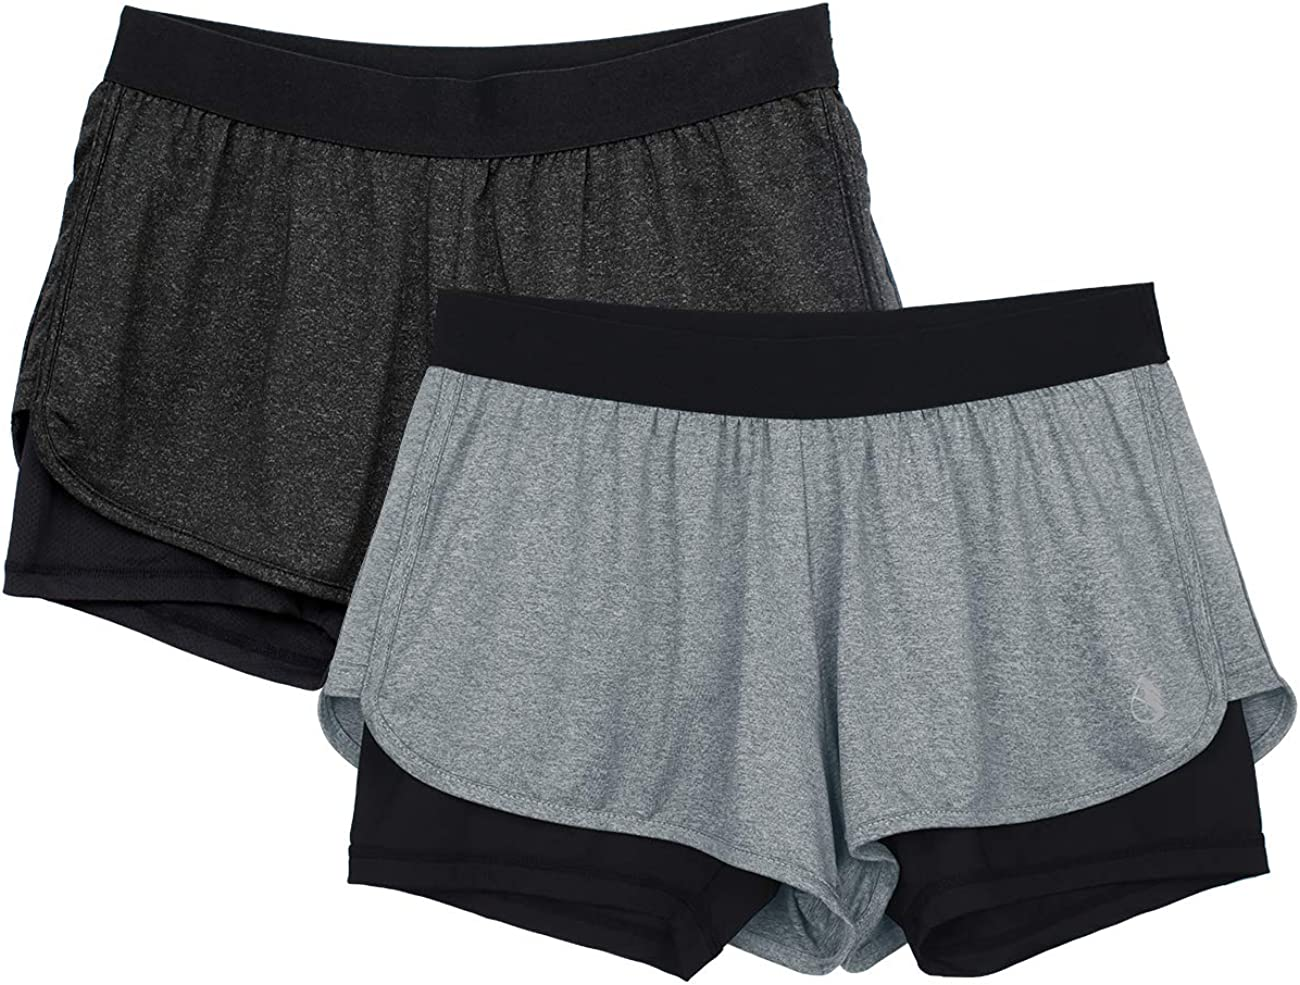 icyzone Running Yoga quality assurance Shorts Excellence for Activewear - Women Exerc Workout